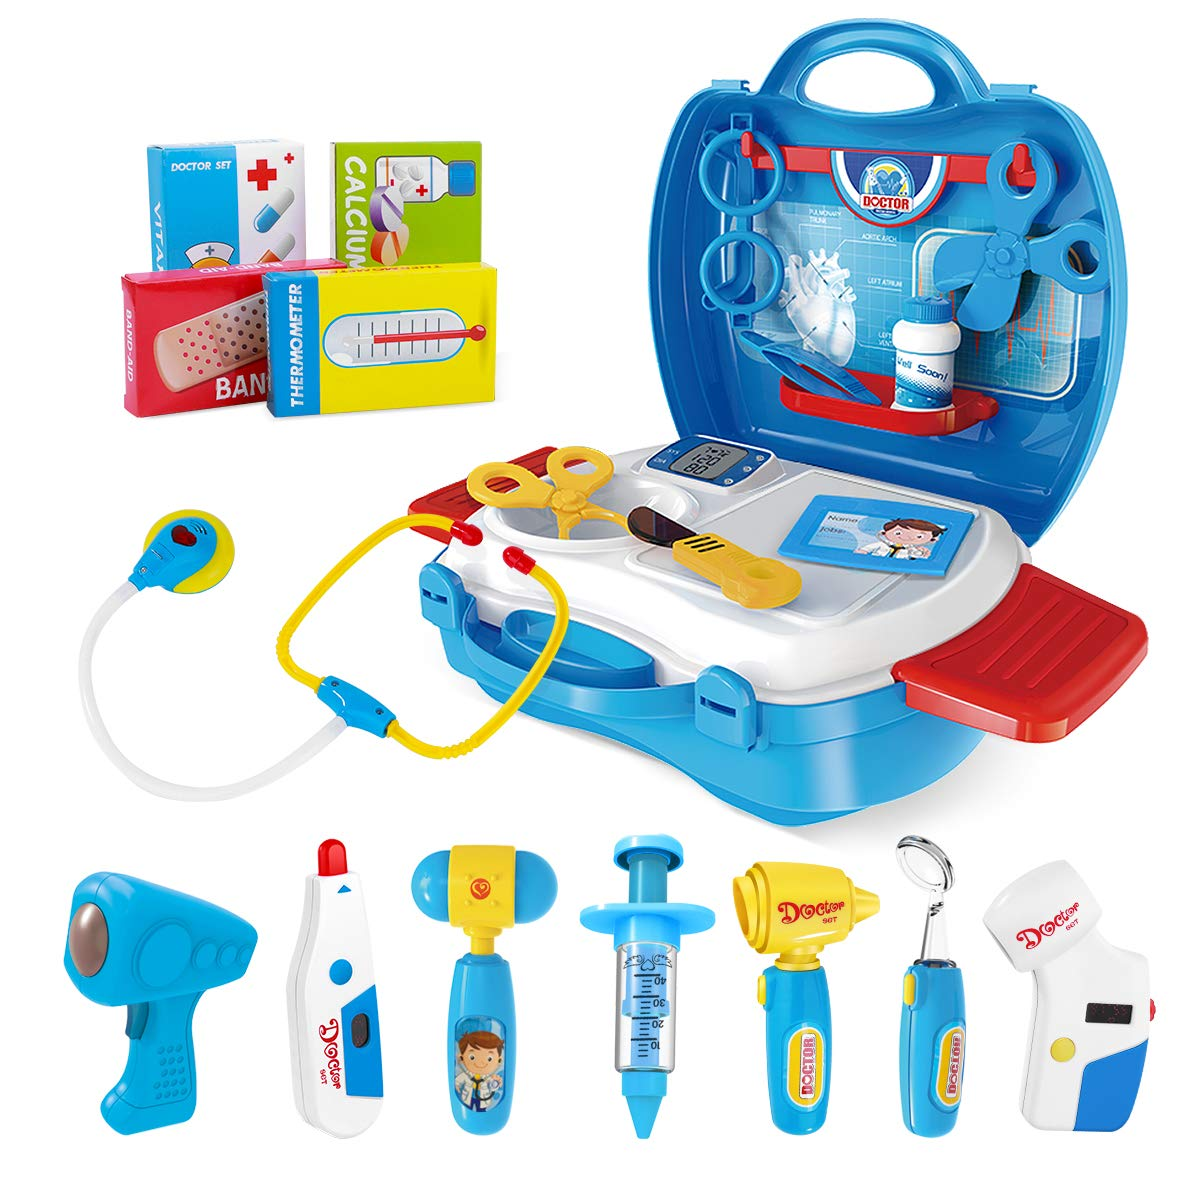 iBaseToy Doctor Kit for Kids, 27Pcs Pretend Medical Doctor Medical Playset with Electronic Stethoscope, Medical Kits Gift, Educational Doctor Toys for Toddler Boys Girls (Blue) by iBaseToy (Image #1)